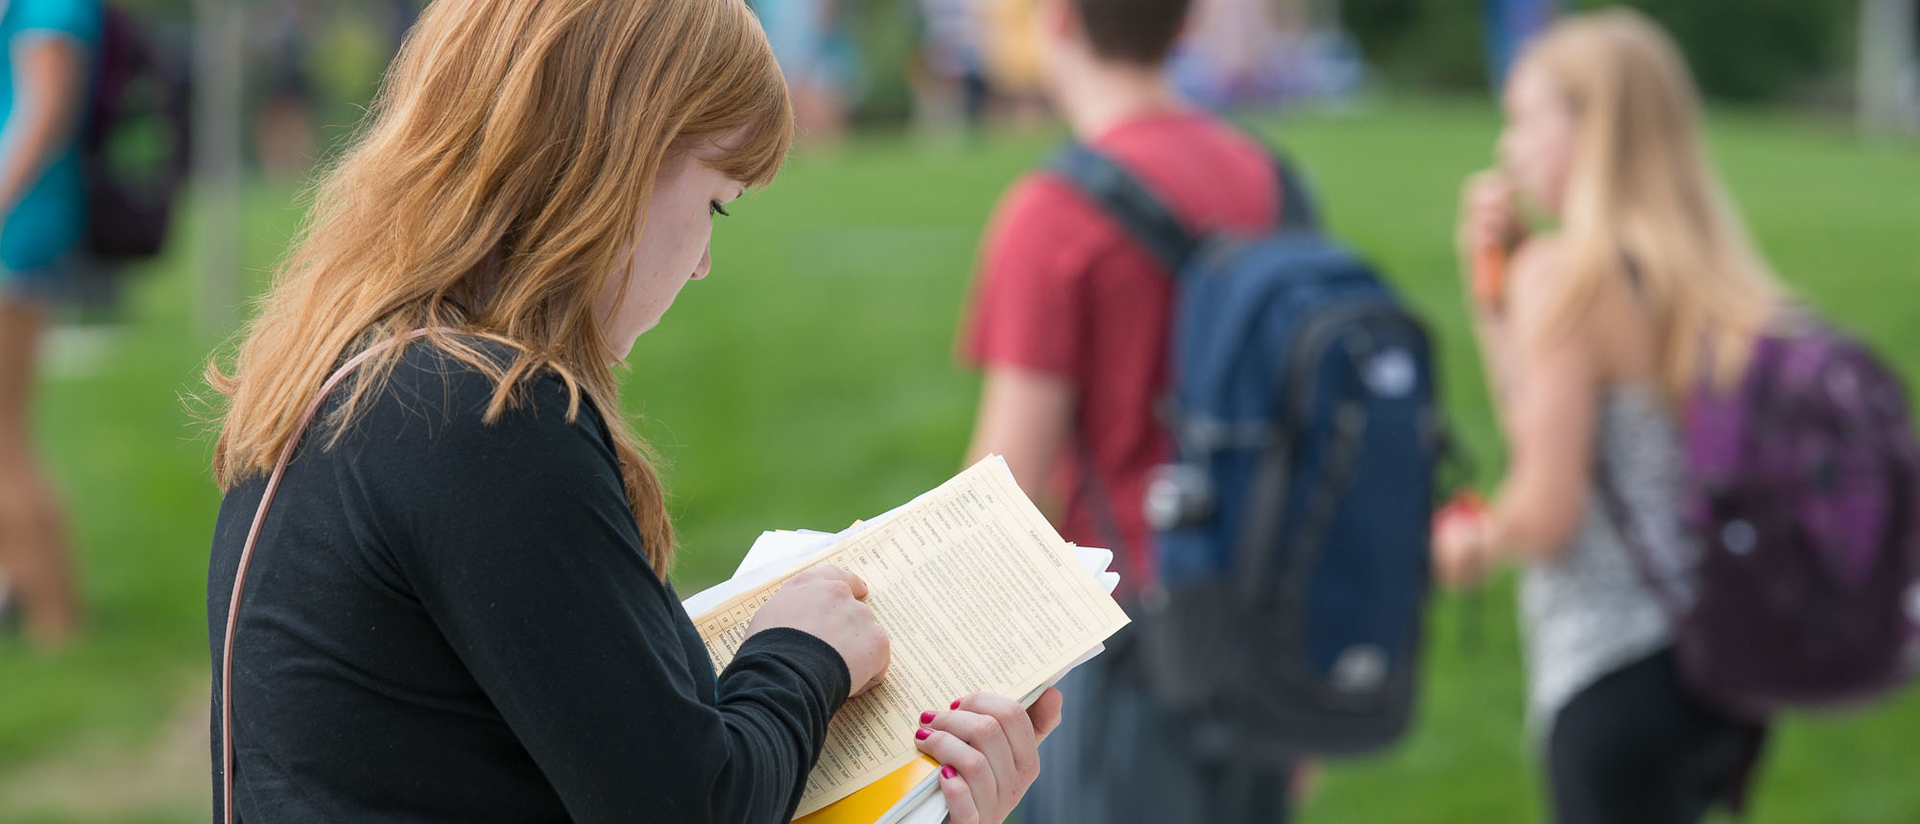 Student walking and reading papers